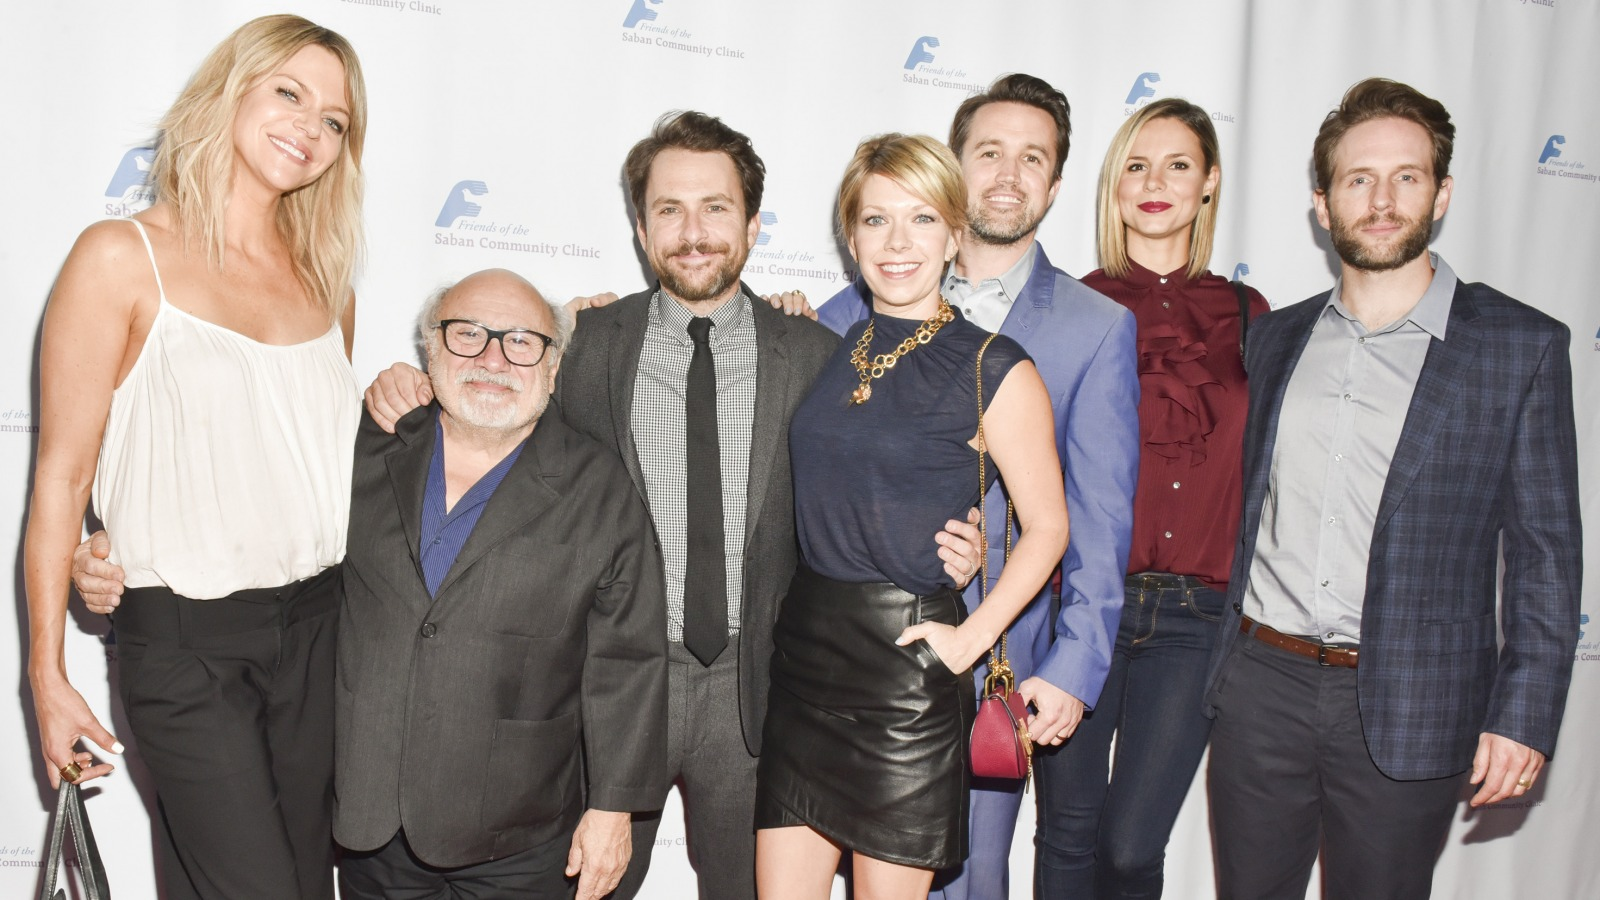 The real-life partners of the It's Always Sunny in Philadelphia cast